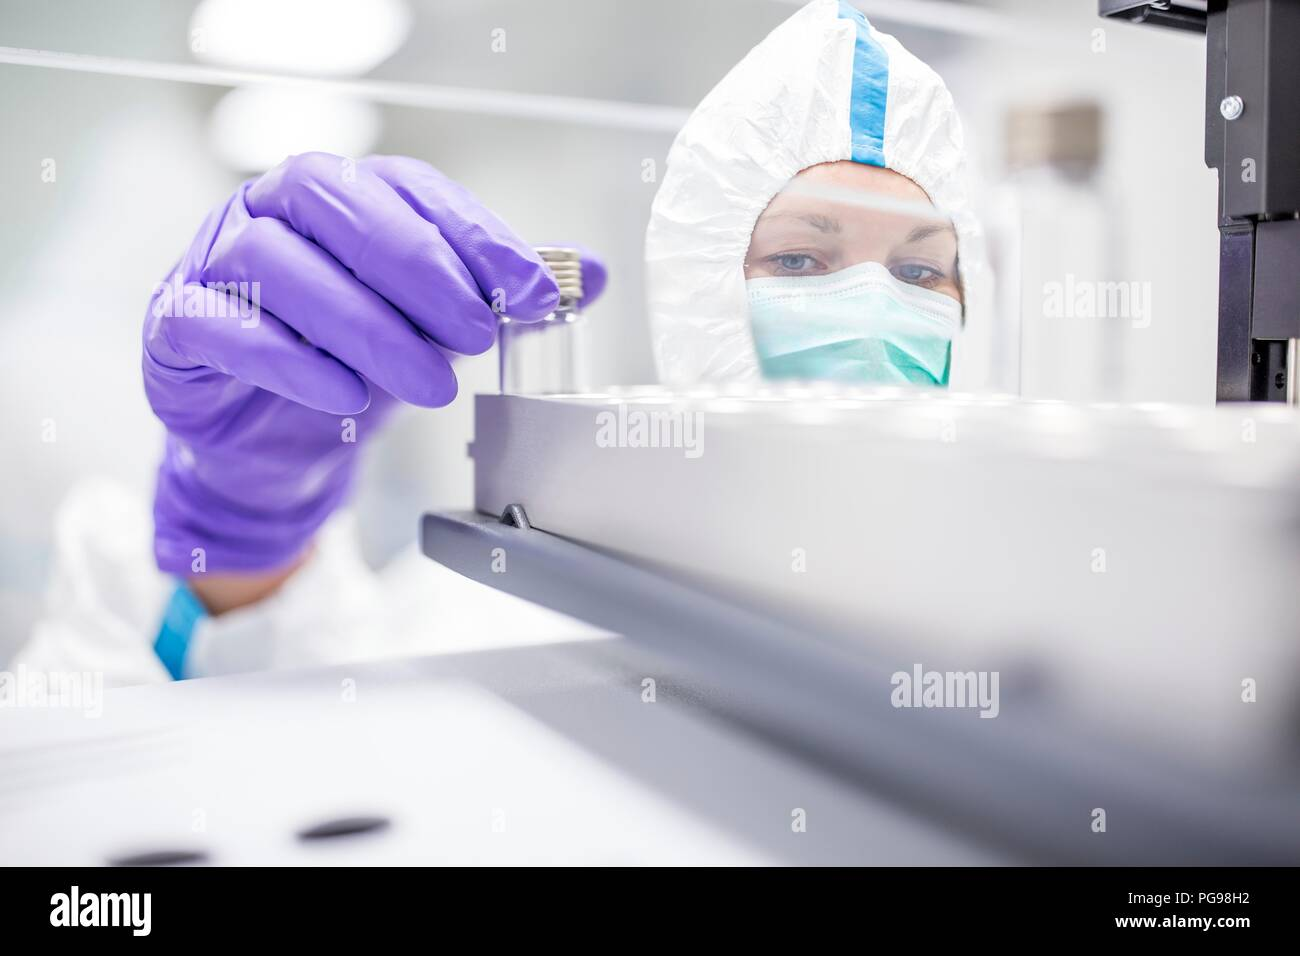 Technician checking stem cell cultures in a laboratory that manufactures human tissues for implants. Such implants include bone and skin grafts. - Stock Image